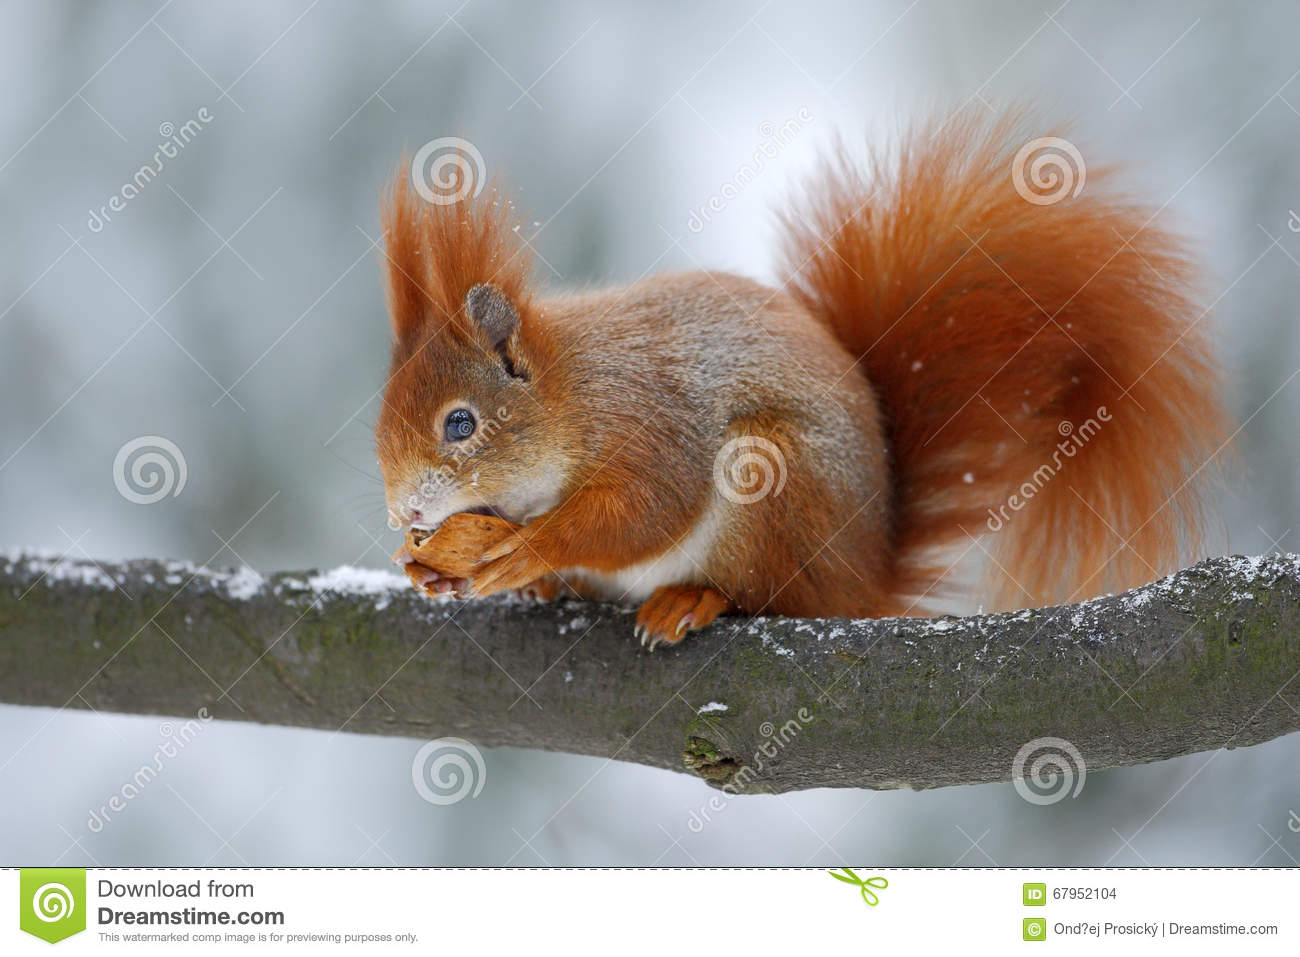 Cute orange red squirrel eats a nut in winter scene with snow, Czech republic